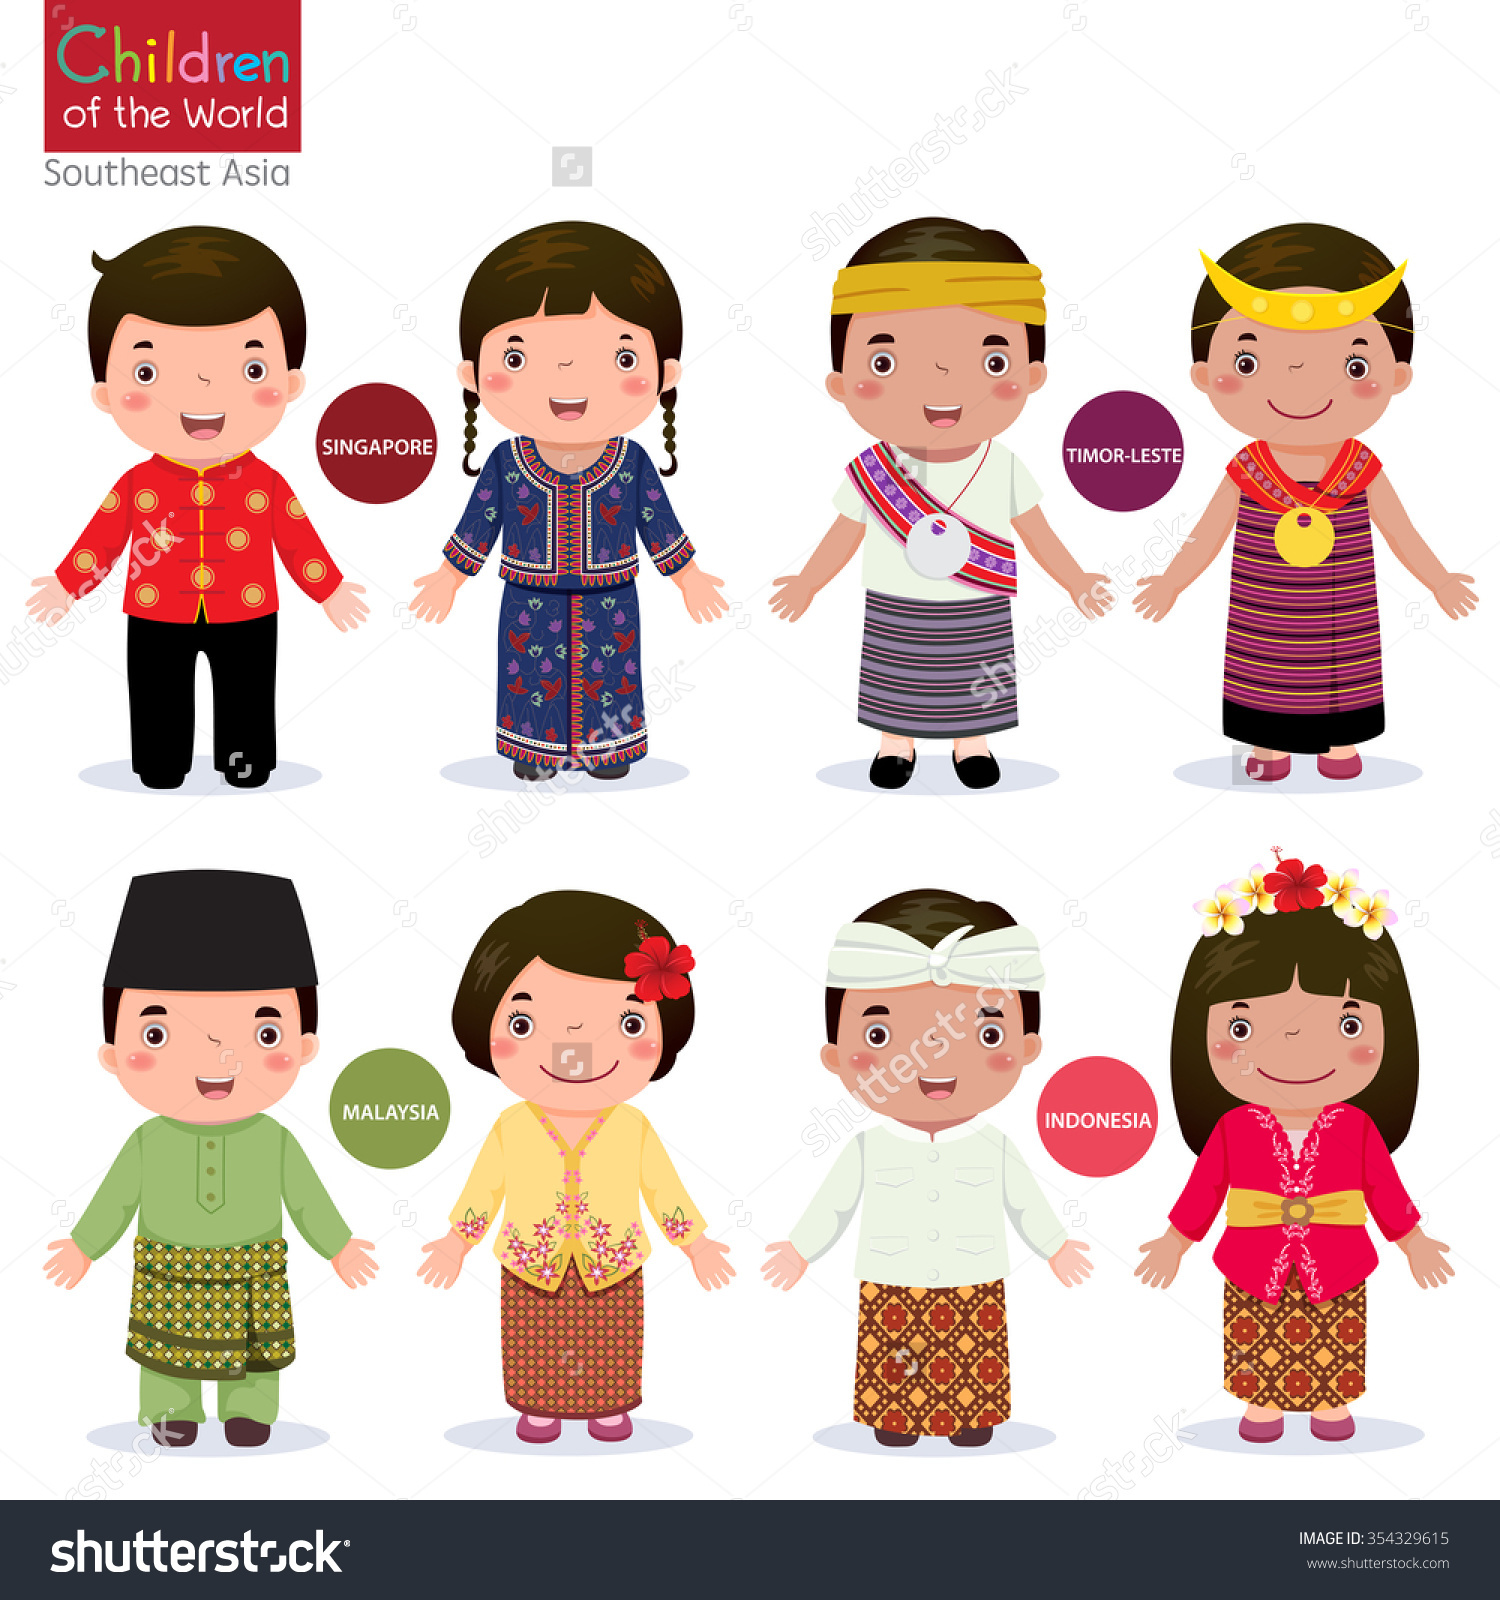 Traditional Costume clipart spanish music In Leste Leste traditional costume;